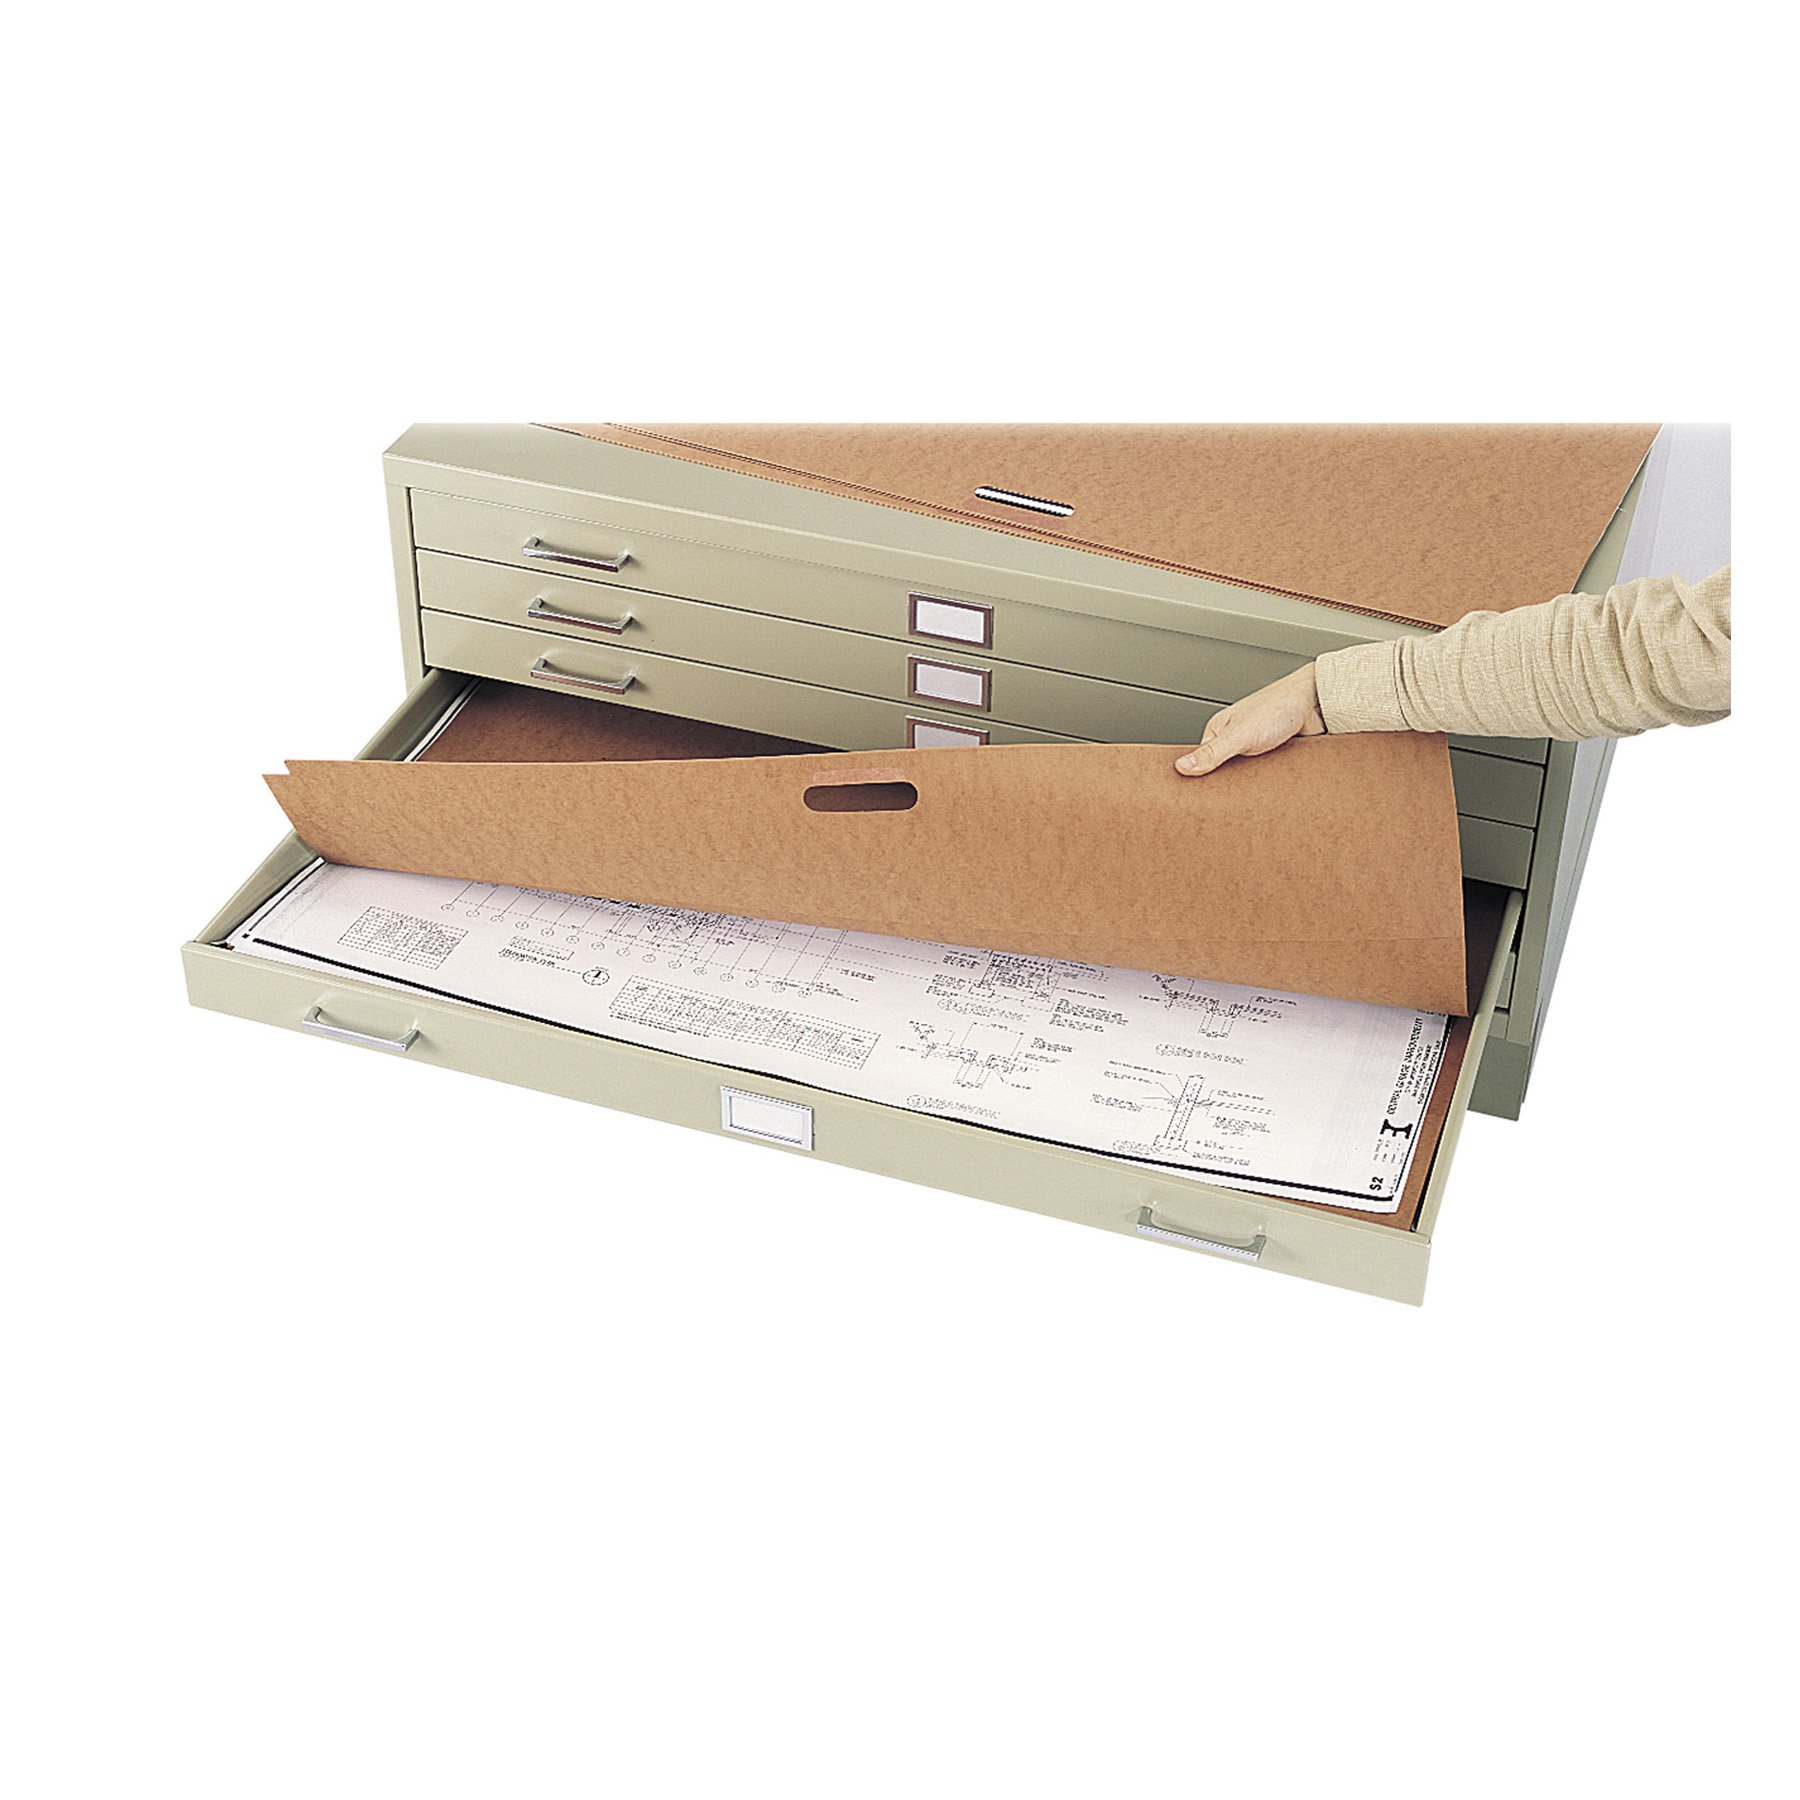 Safco Products 3011 Plan File Portfolio for use with 5-Drawer Steel Flat File 4994, sold separately, Brown